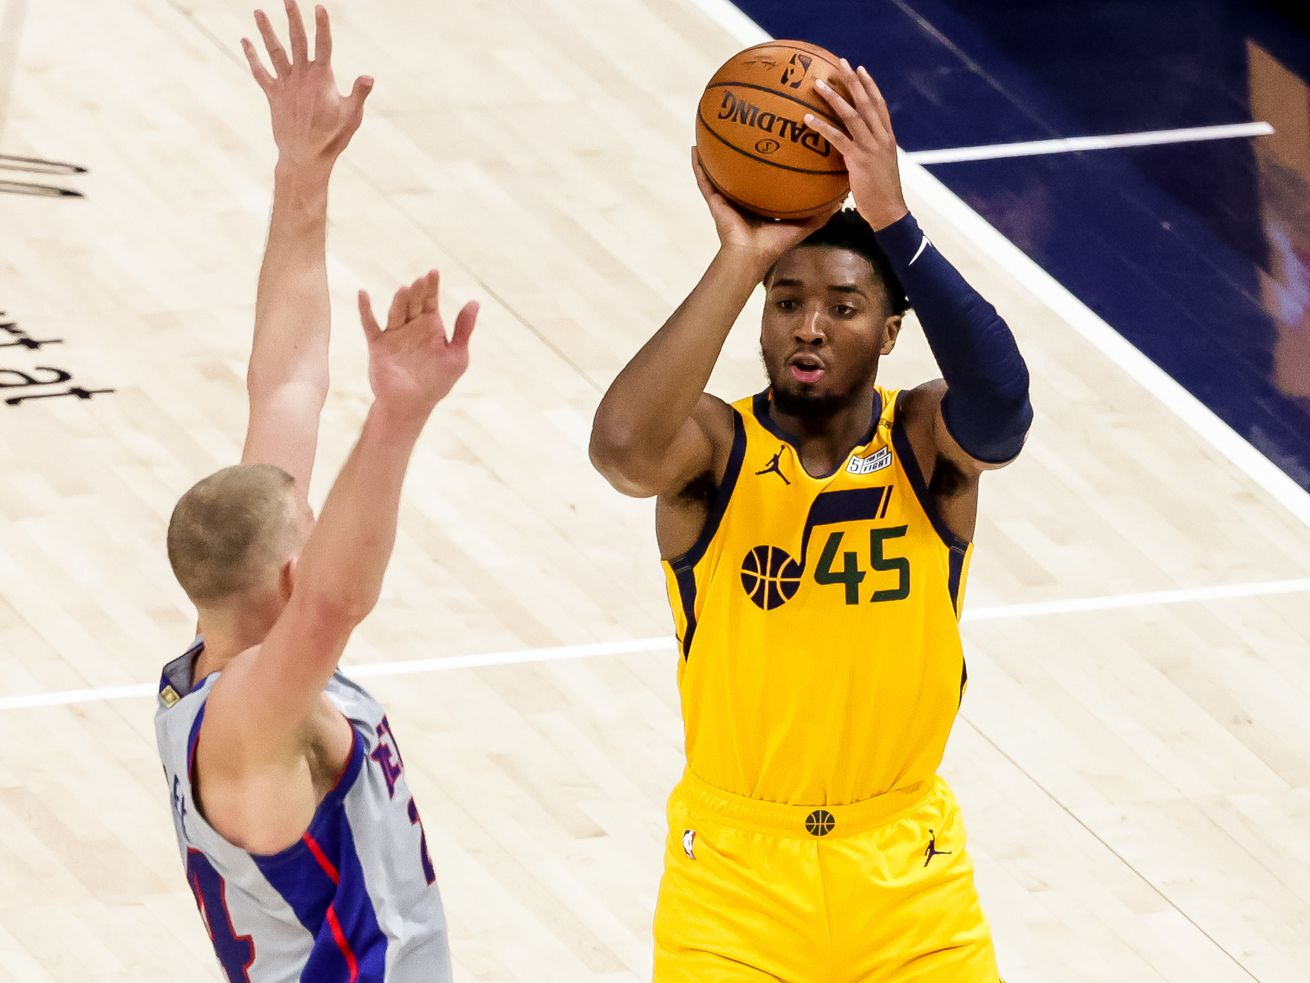 Donovan Mitchell will be in the 3-point contest during the NBA All-Star break. Here's his competition